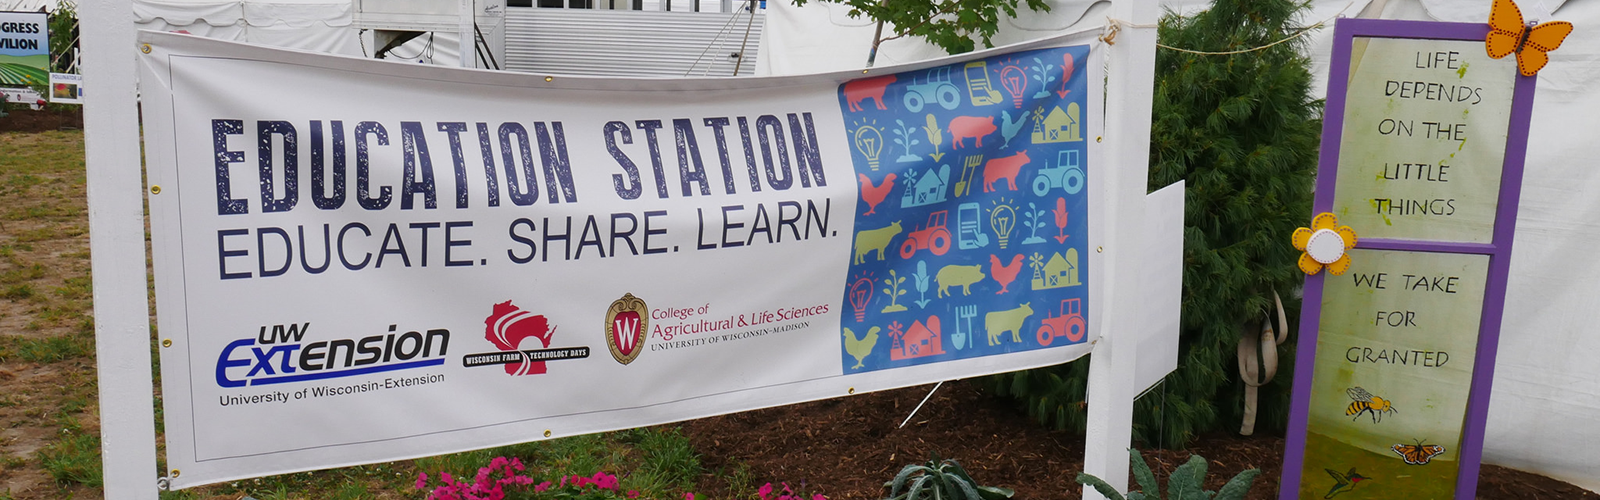 Education Station sign - a UW Extenstion program